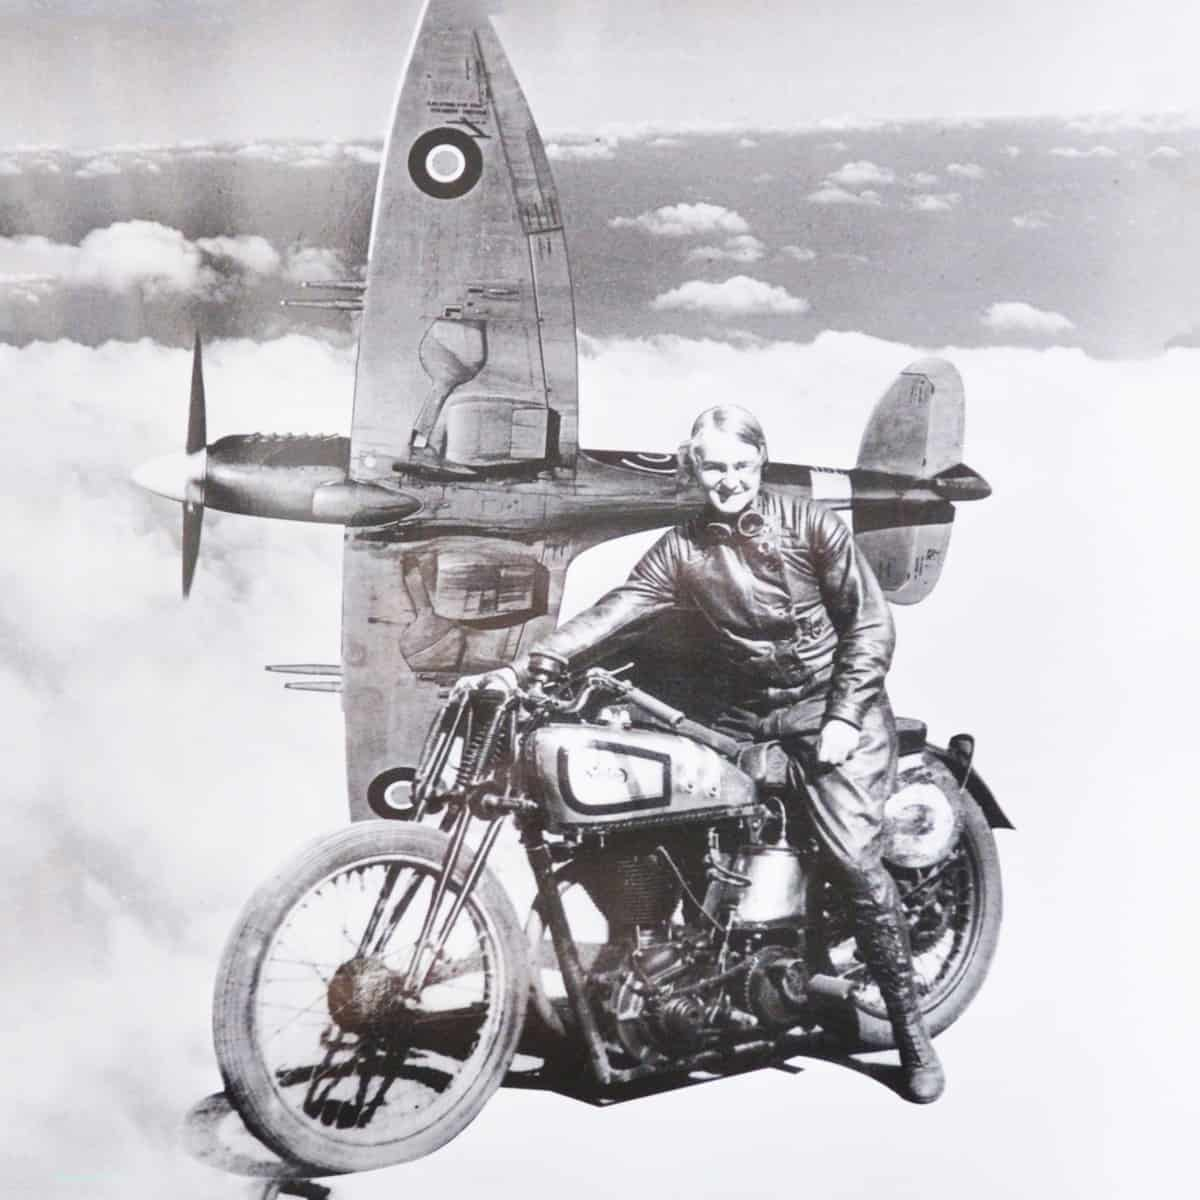 Beatrice 'Tilly' Shilling, who improved the safety of the Spitfire Image: University of Manchester